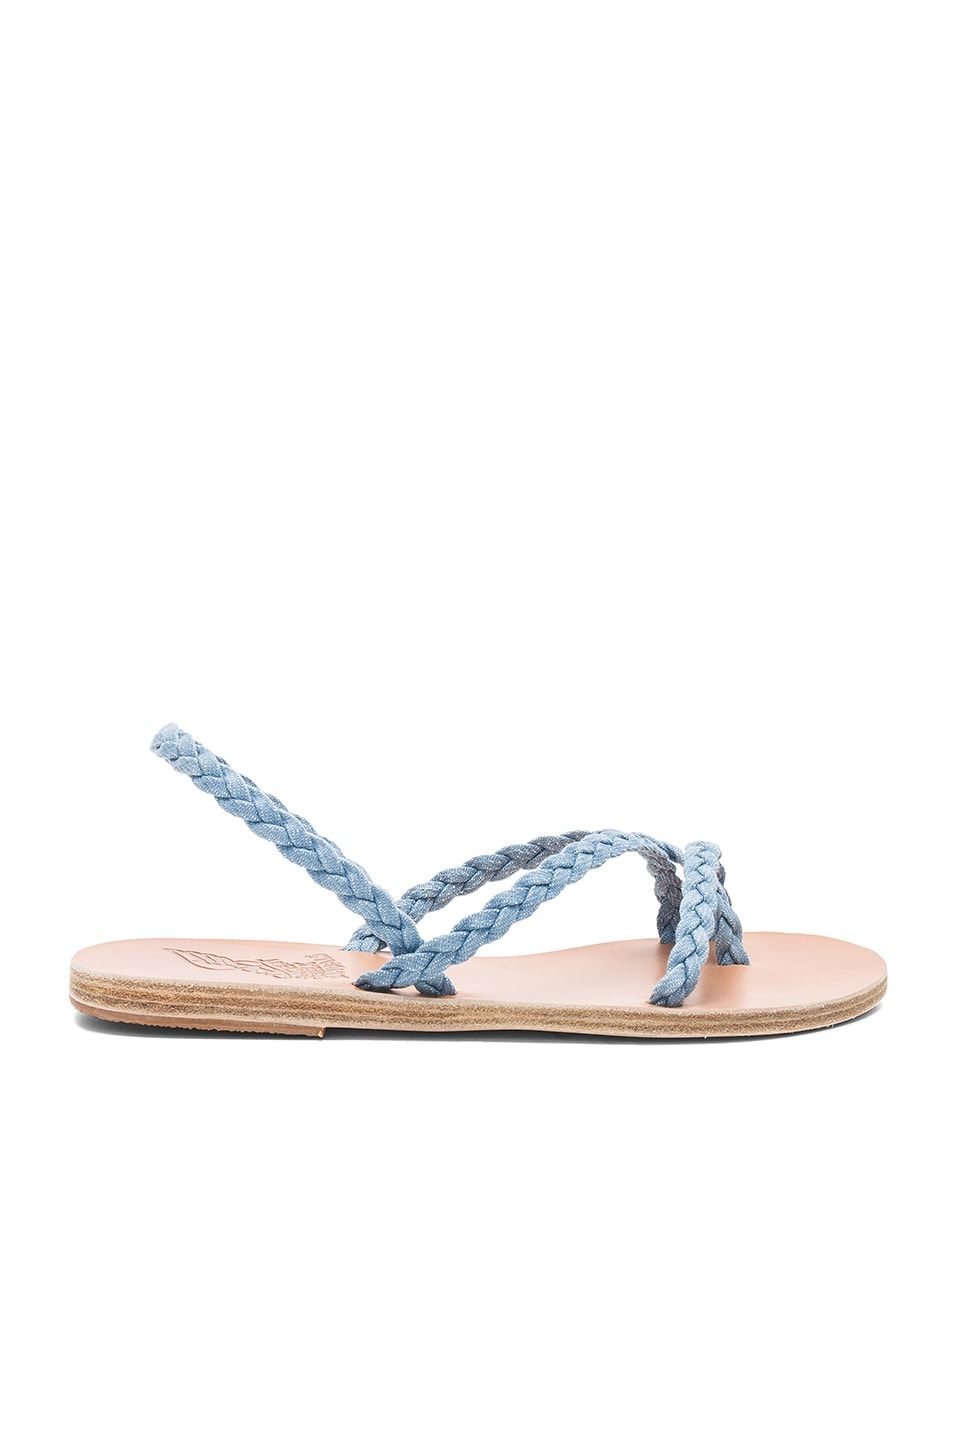 Yianna Denim Sandal by Ancient Greek Sandals